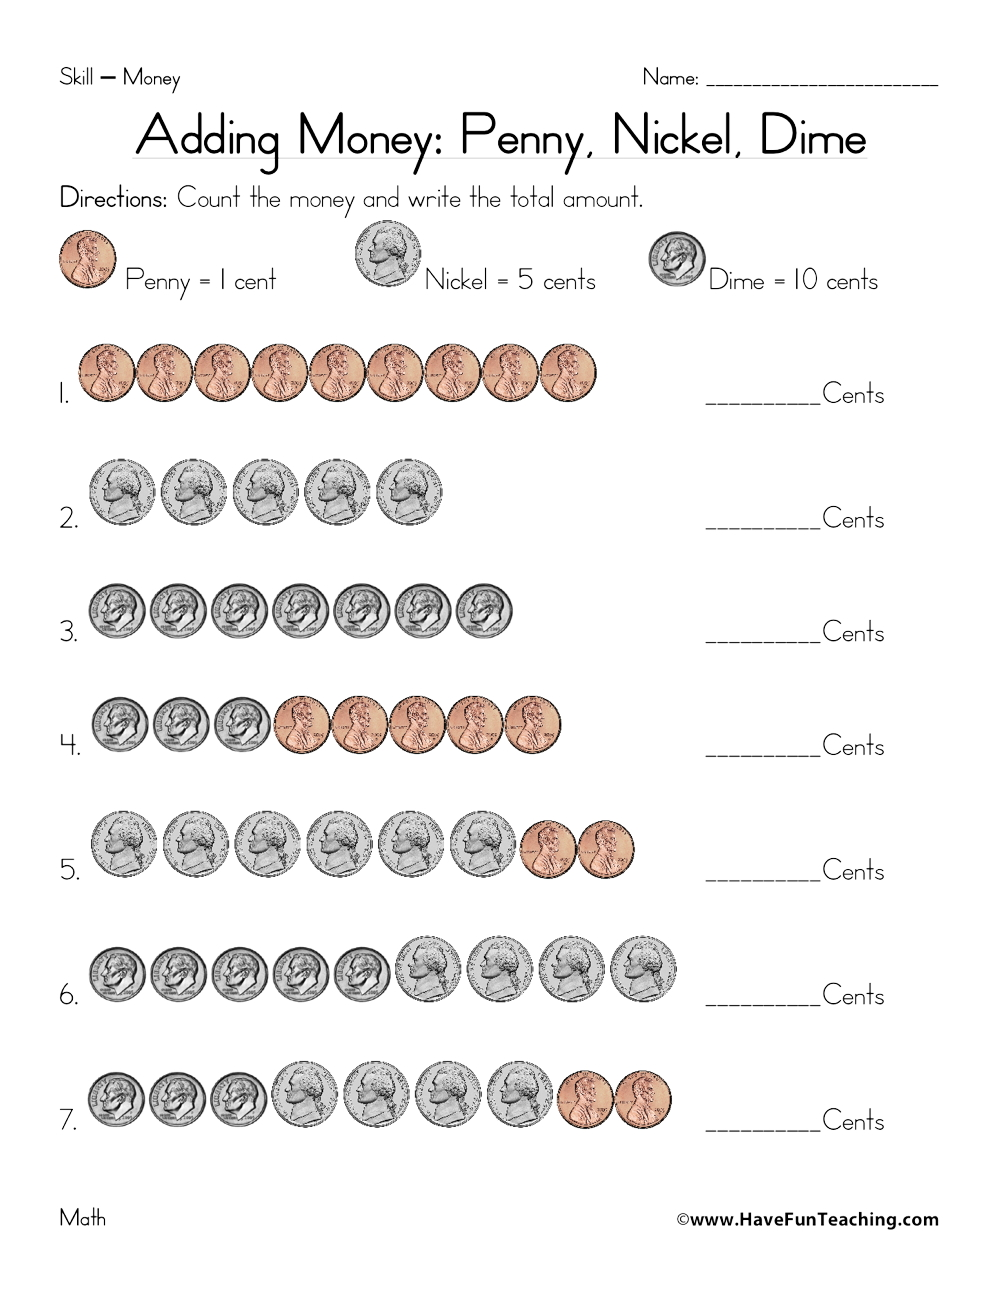 Adding Money Worksheet - Penny, Nickel, Dime - Have Fun Teaching